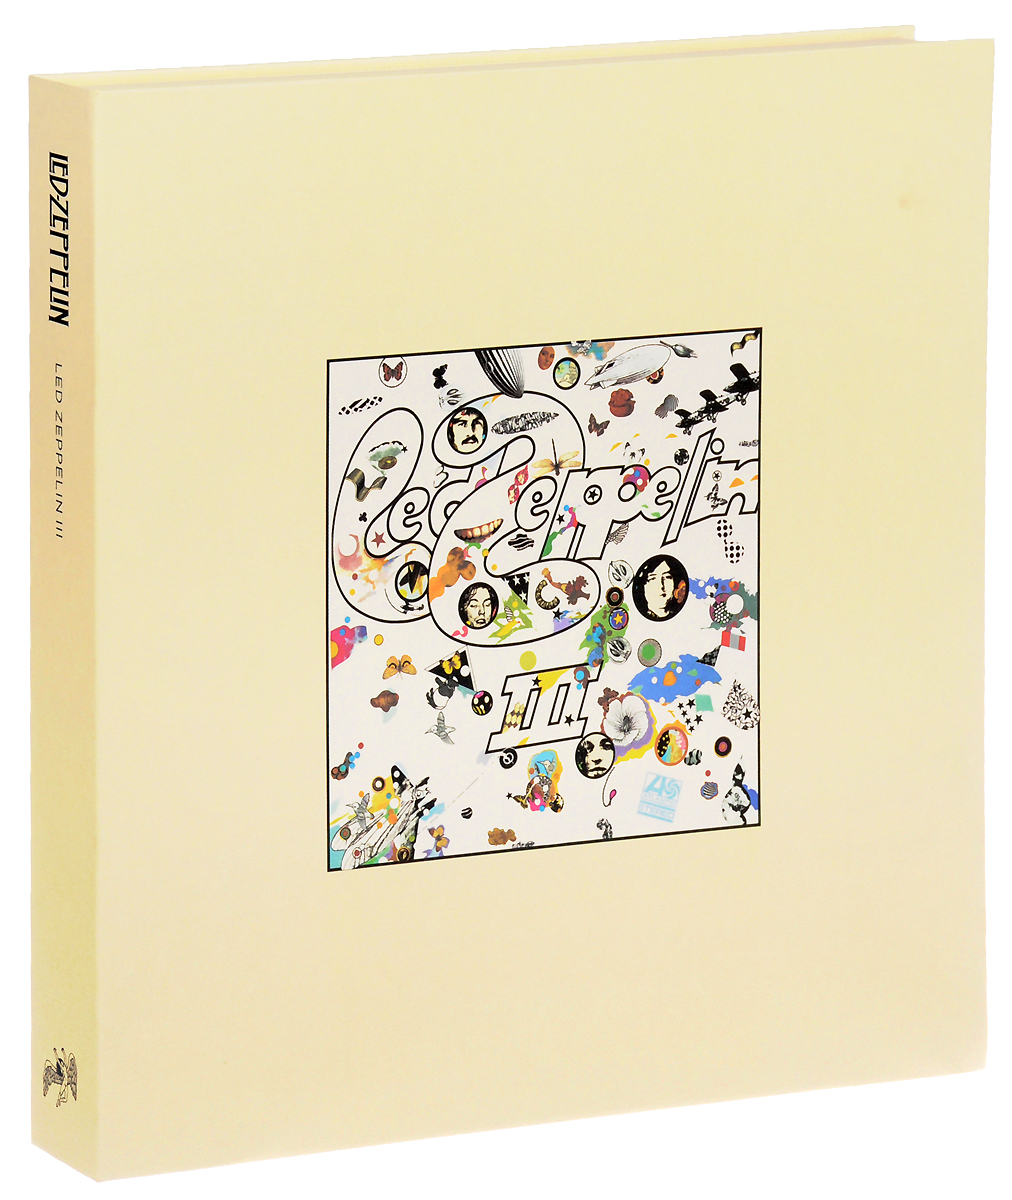 Фото - Led Zeppelin Led Zeppelin. Led Zeppelin III. Super Deluxe Edition (2 LP + 2 CD) cd led zeppelin ii deluxe edition